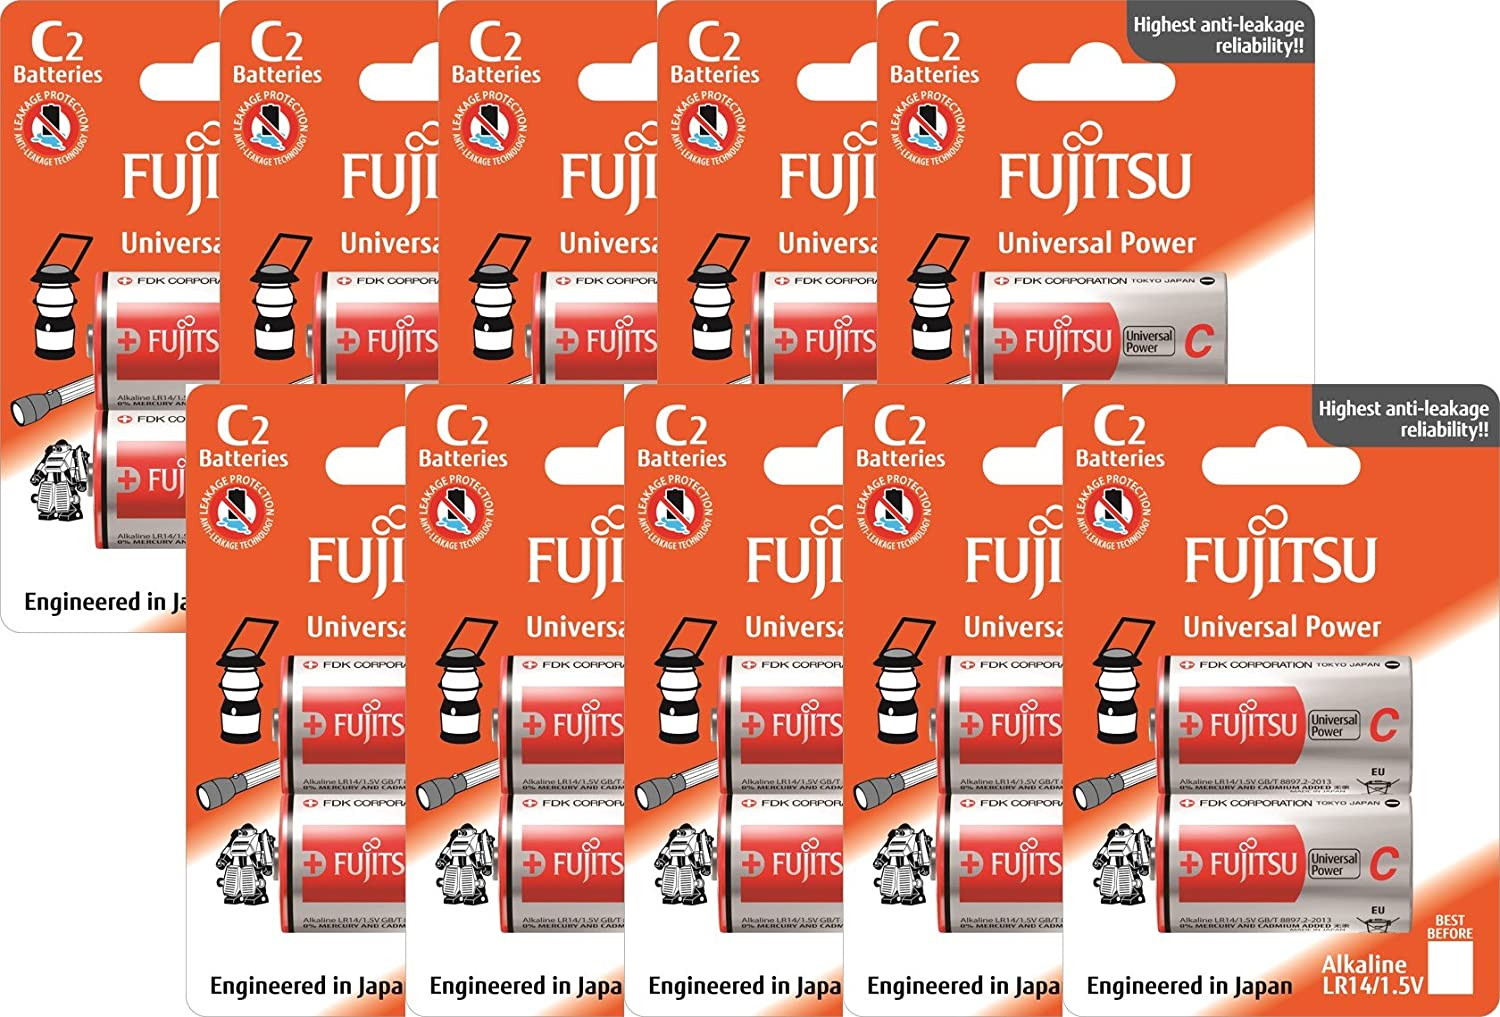 Fujitsu Universal Alkaline Battery - C2 Batteries Pack of 10 (Appearance May Vary from Pictures)